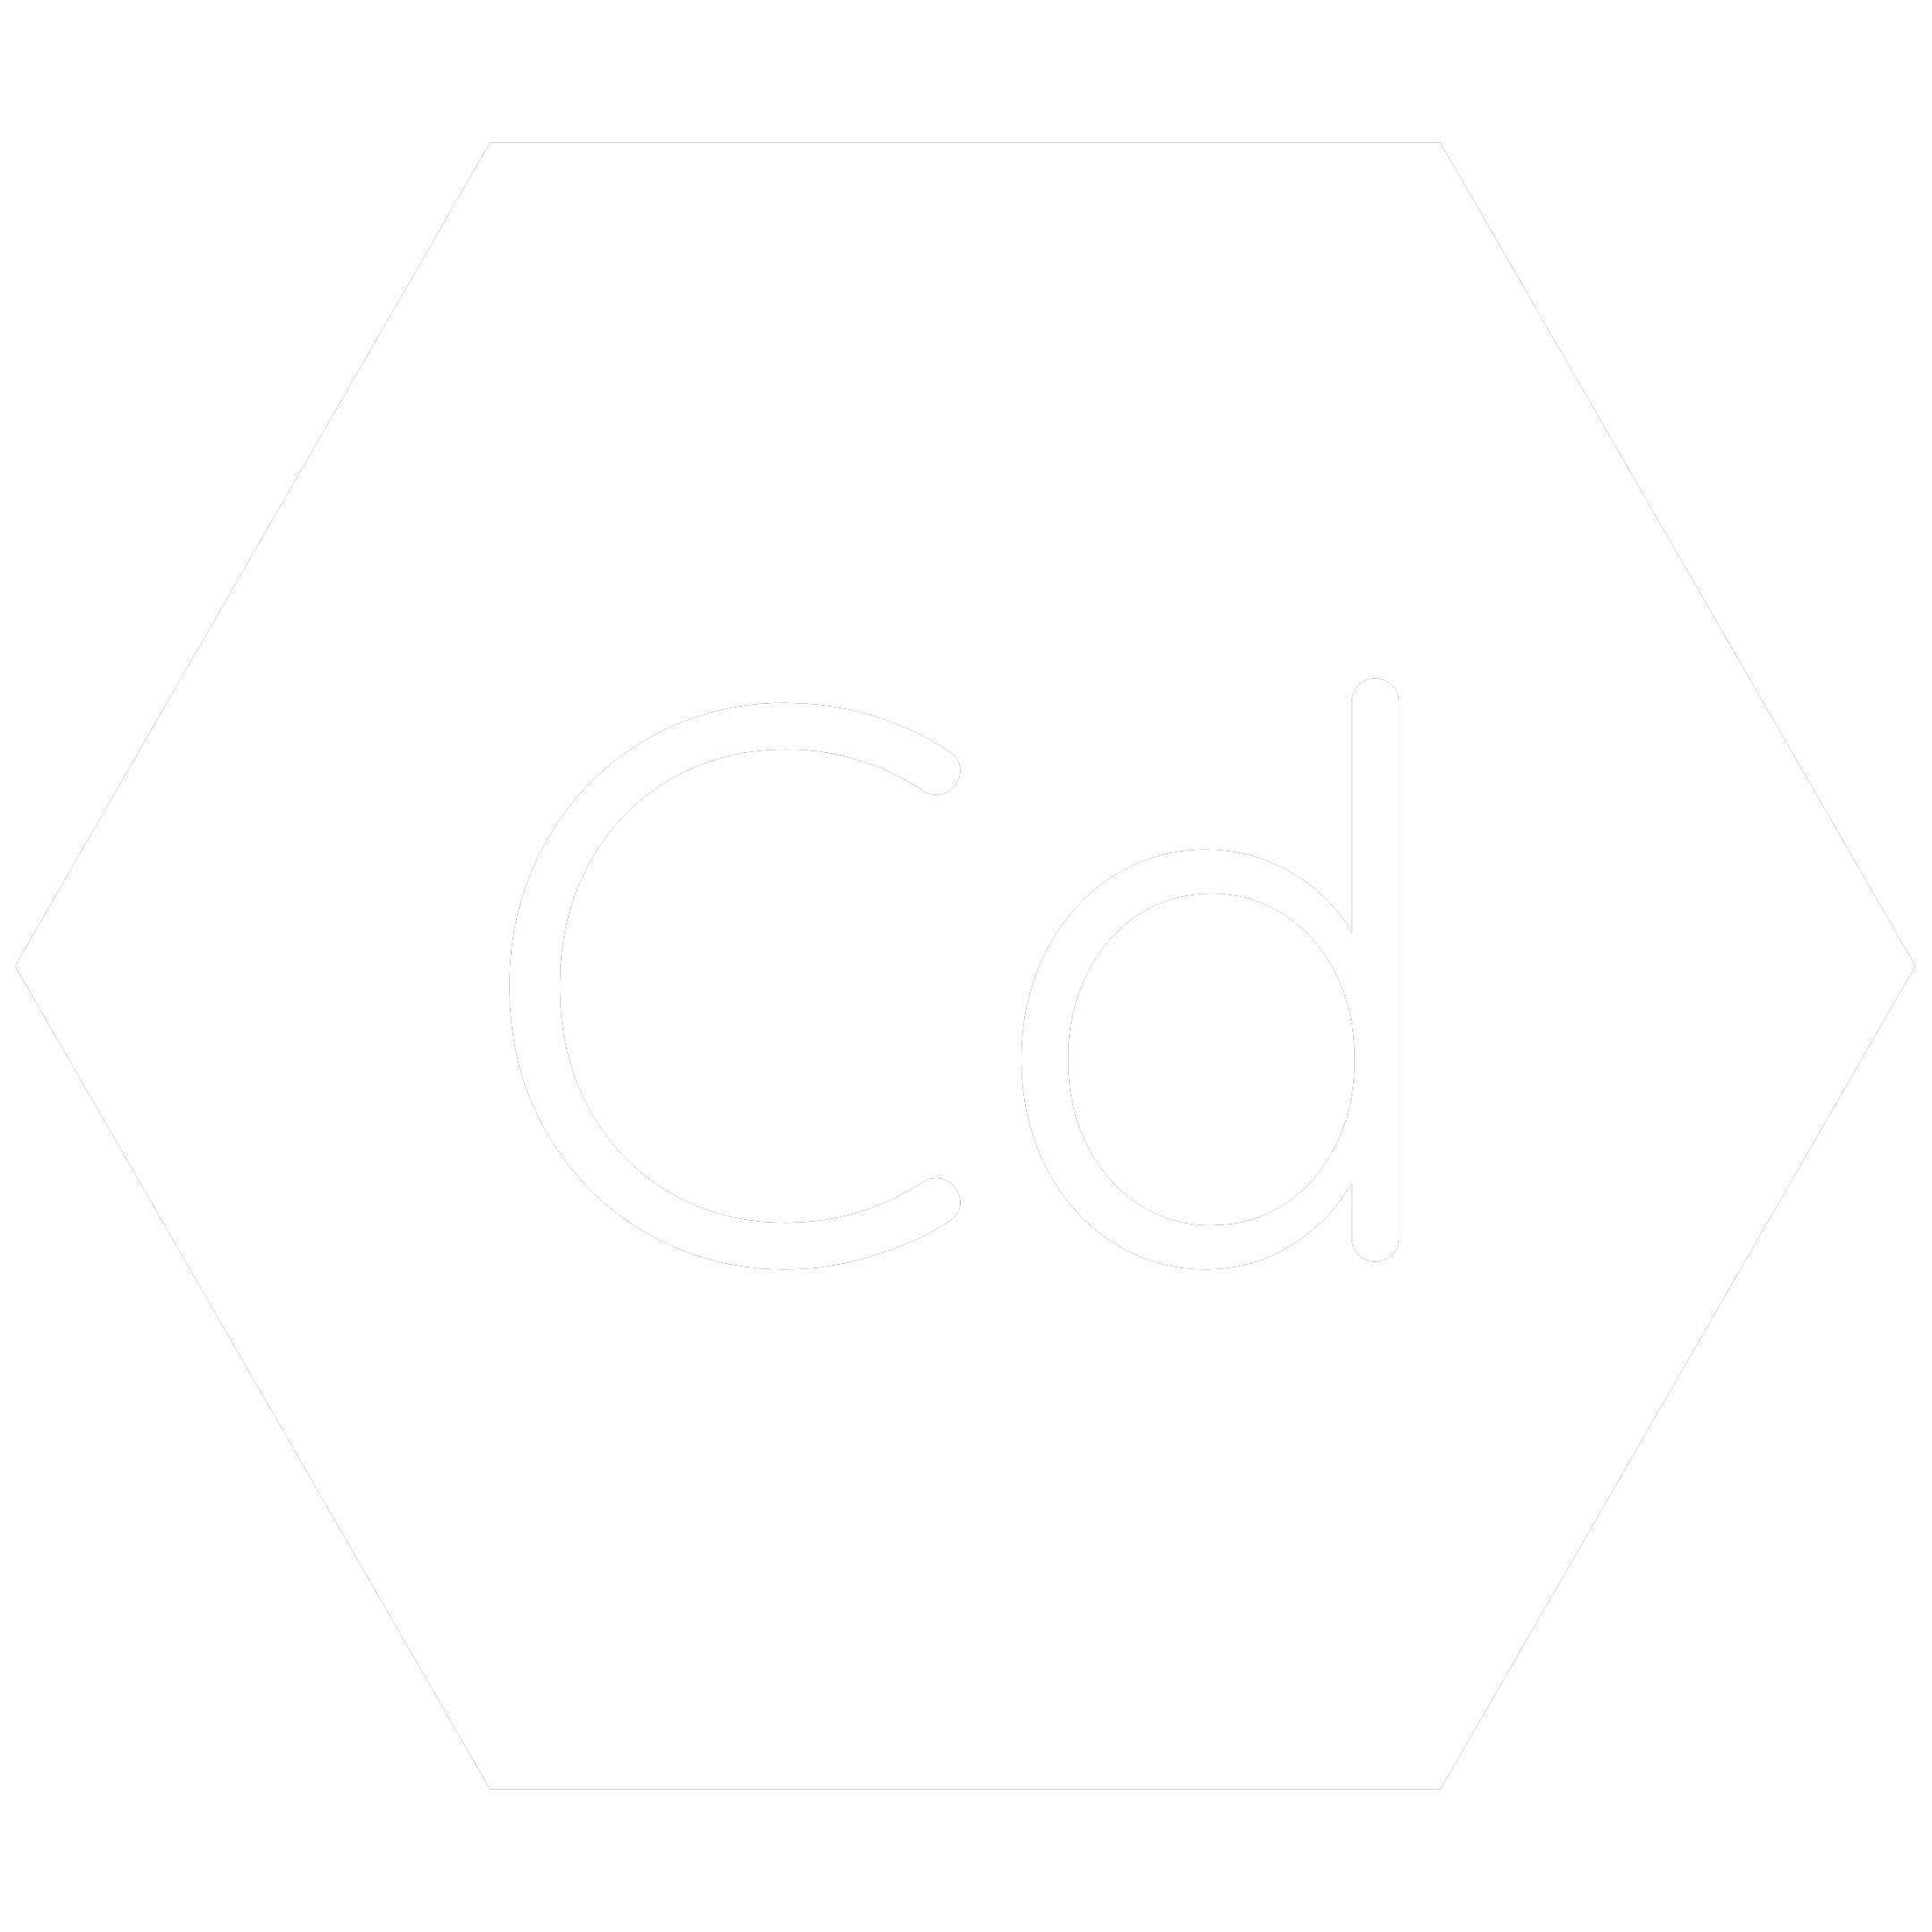 White hexagon icon with the chemical symbol for Cadmium which is a banned RoHS substance.